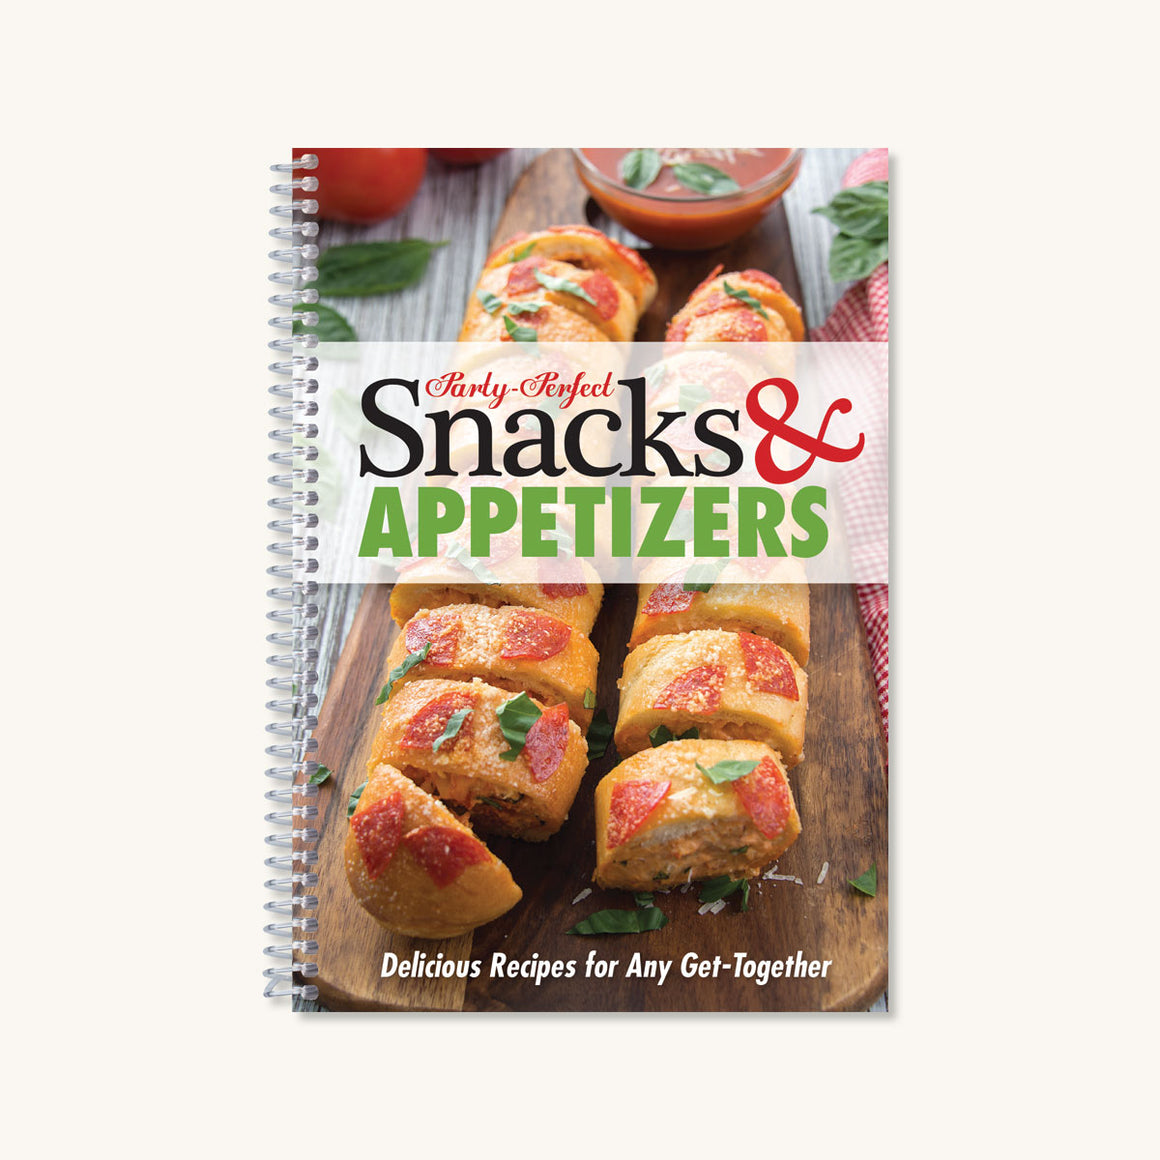 Party-Perfect Snacks & Appetizers